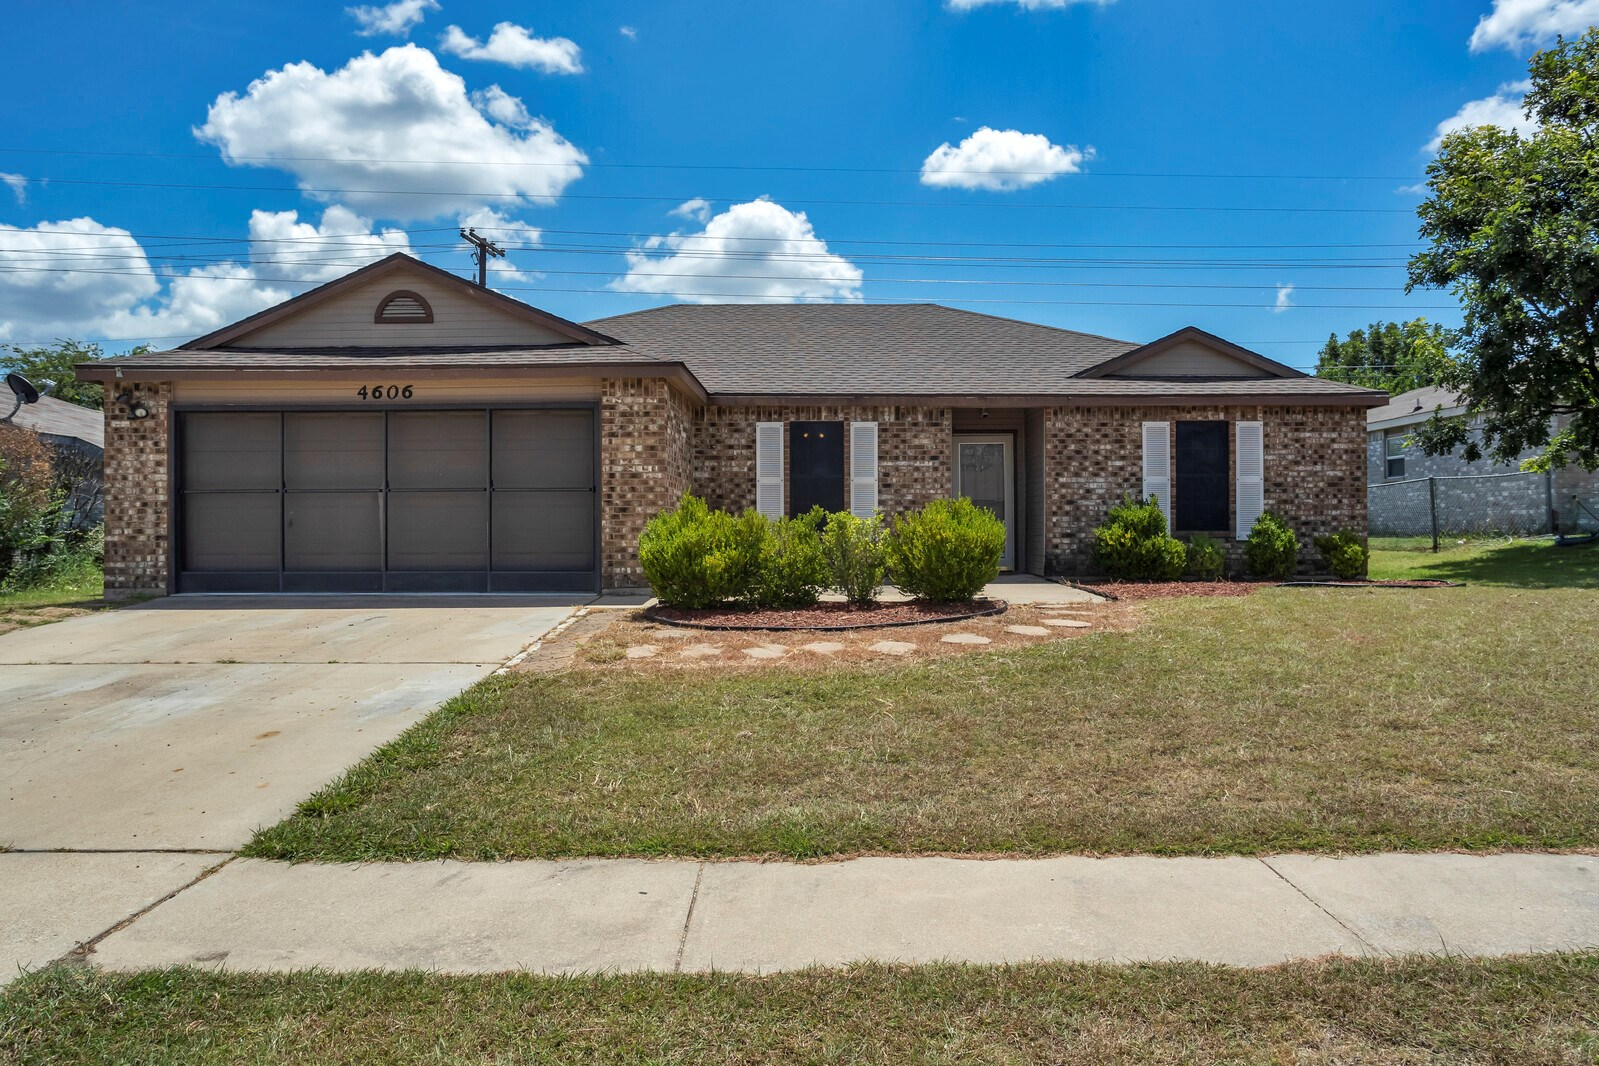 House for sale in Killeen, TX